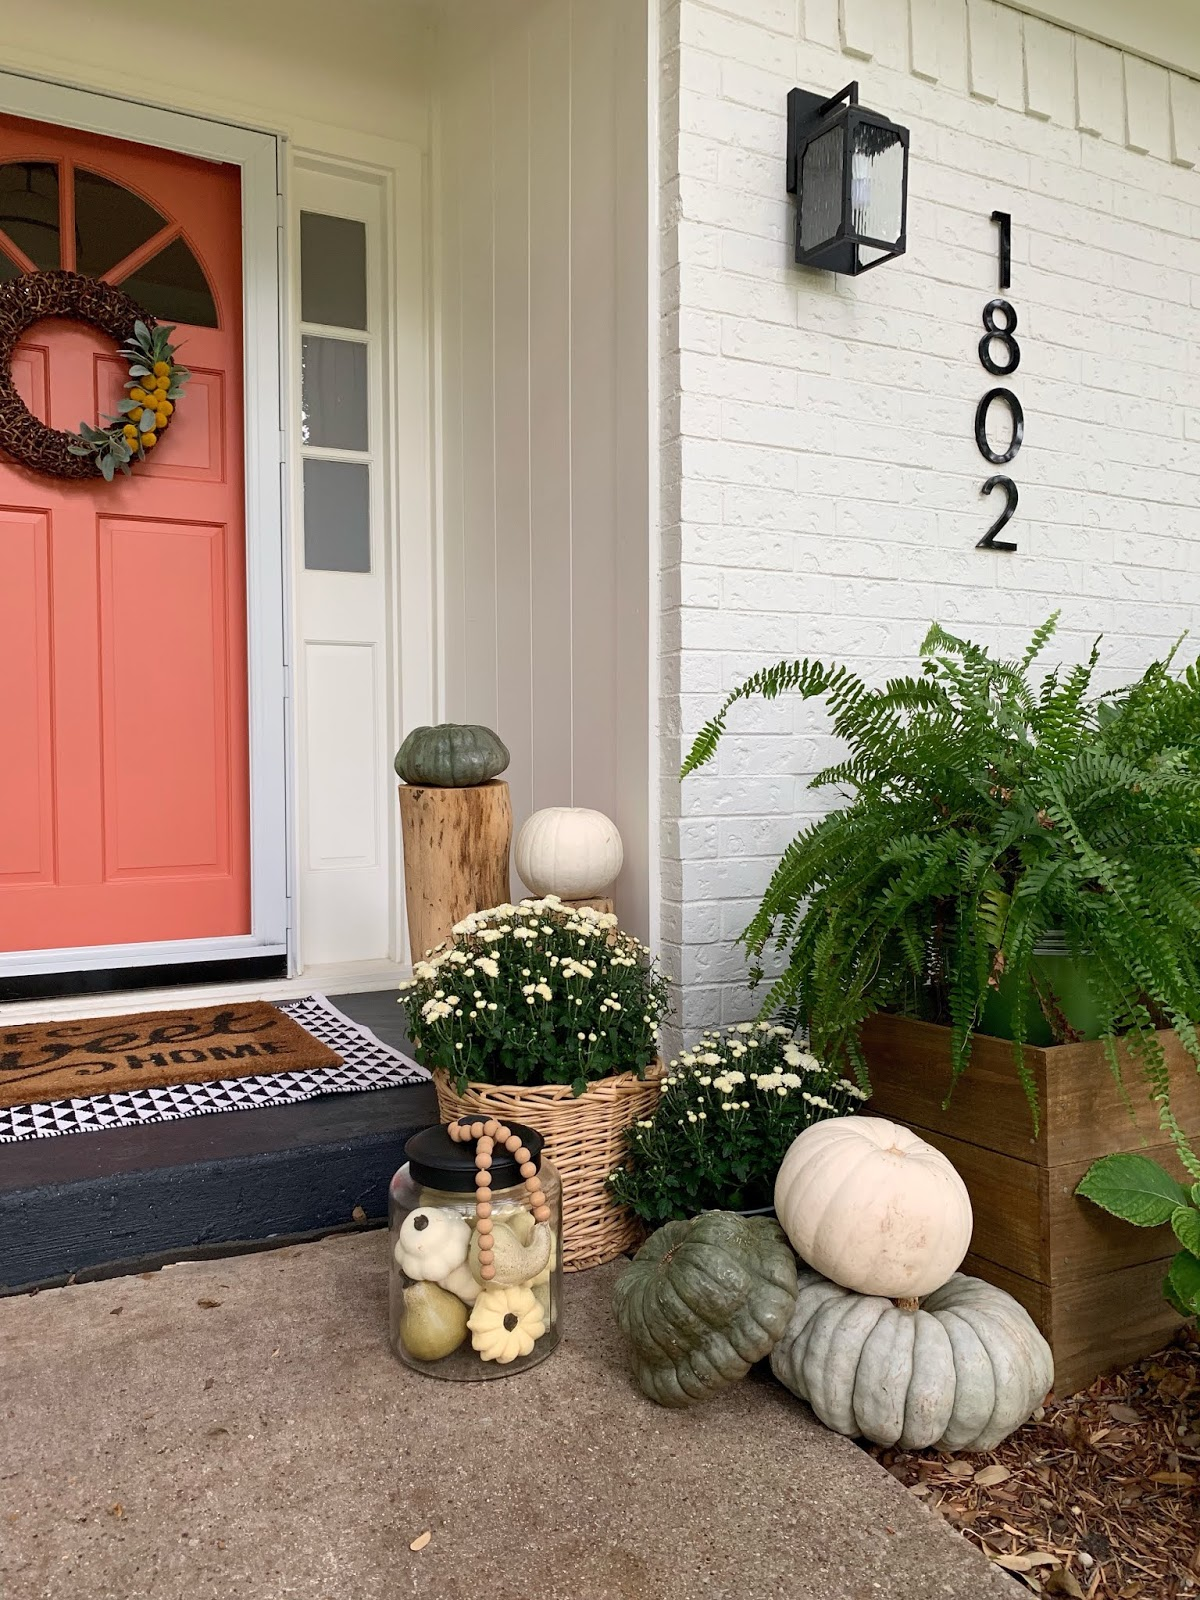 Something different late fall home tour painted fall porch | House Homemade